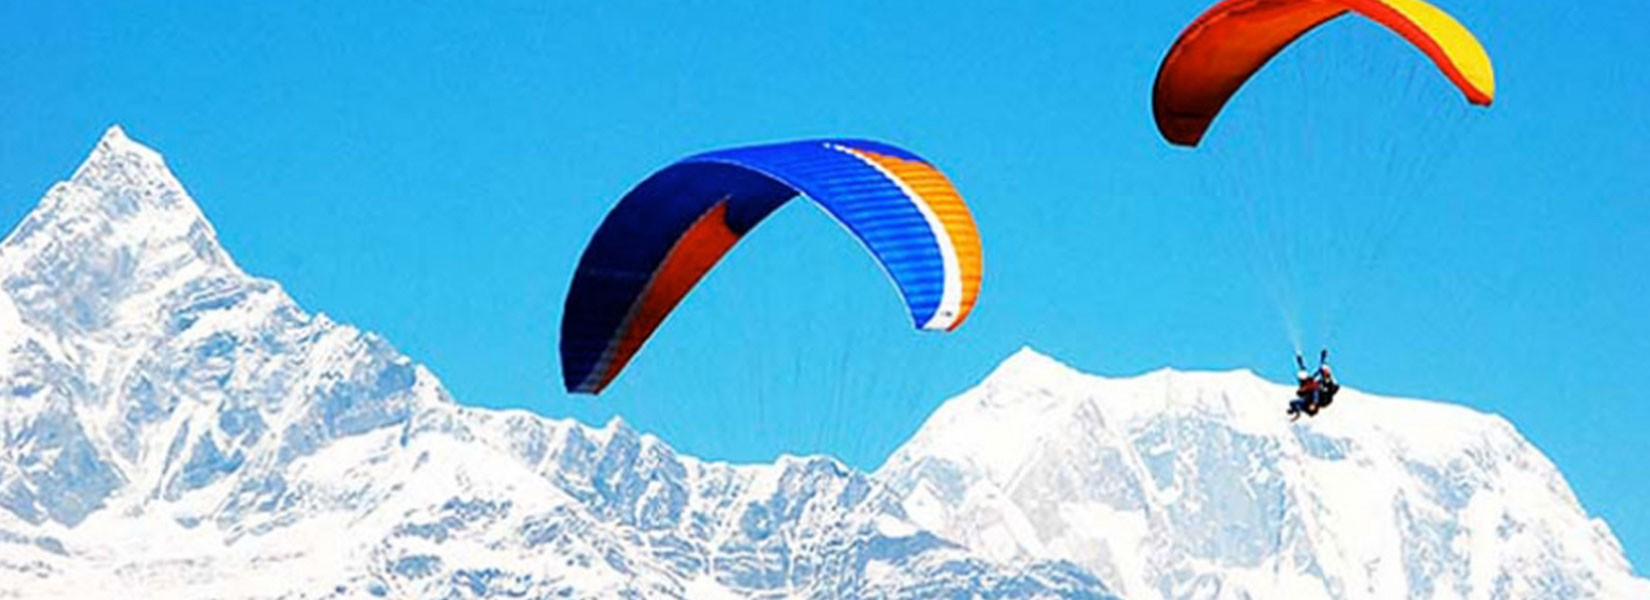 Nepal Himalaya Adventure Sports